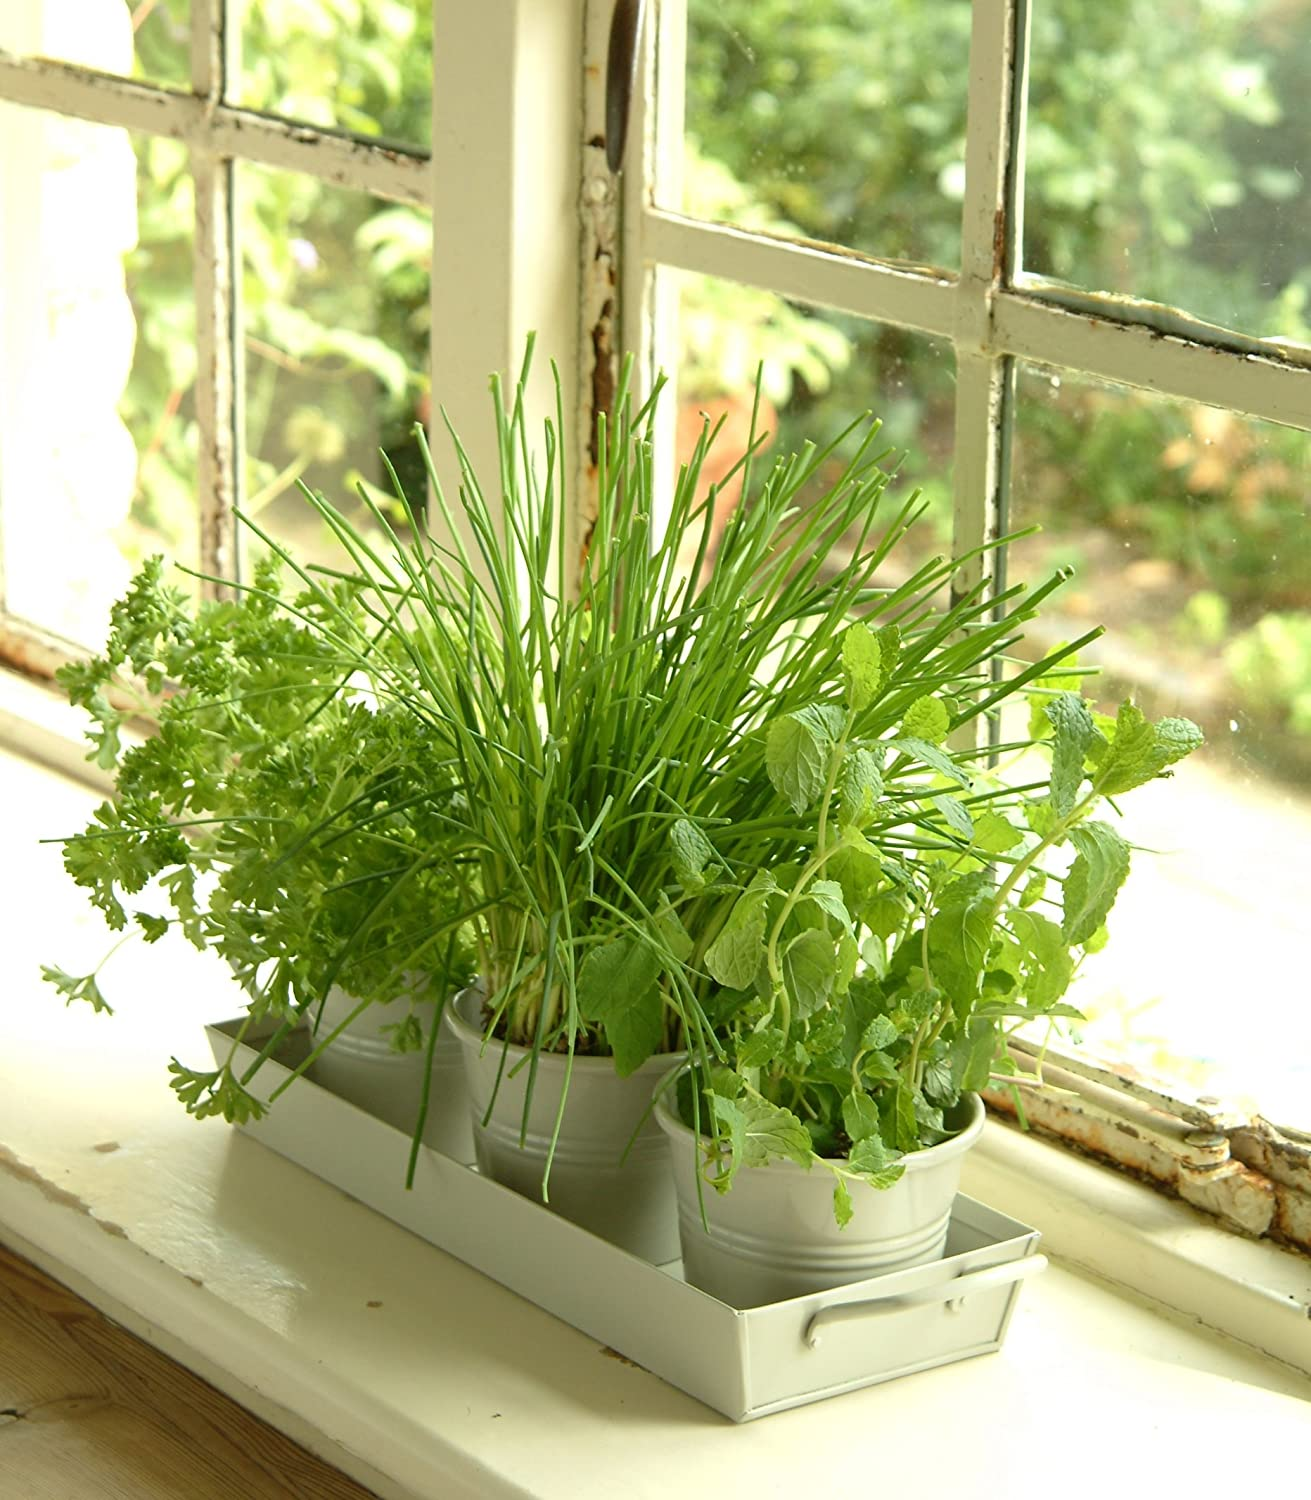 Herb Kits For Indoors: Kitchen Herb Pots Wooden Planter Window Sill Garden Plant